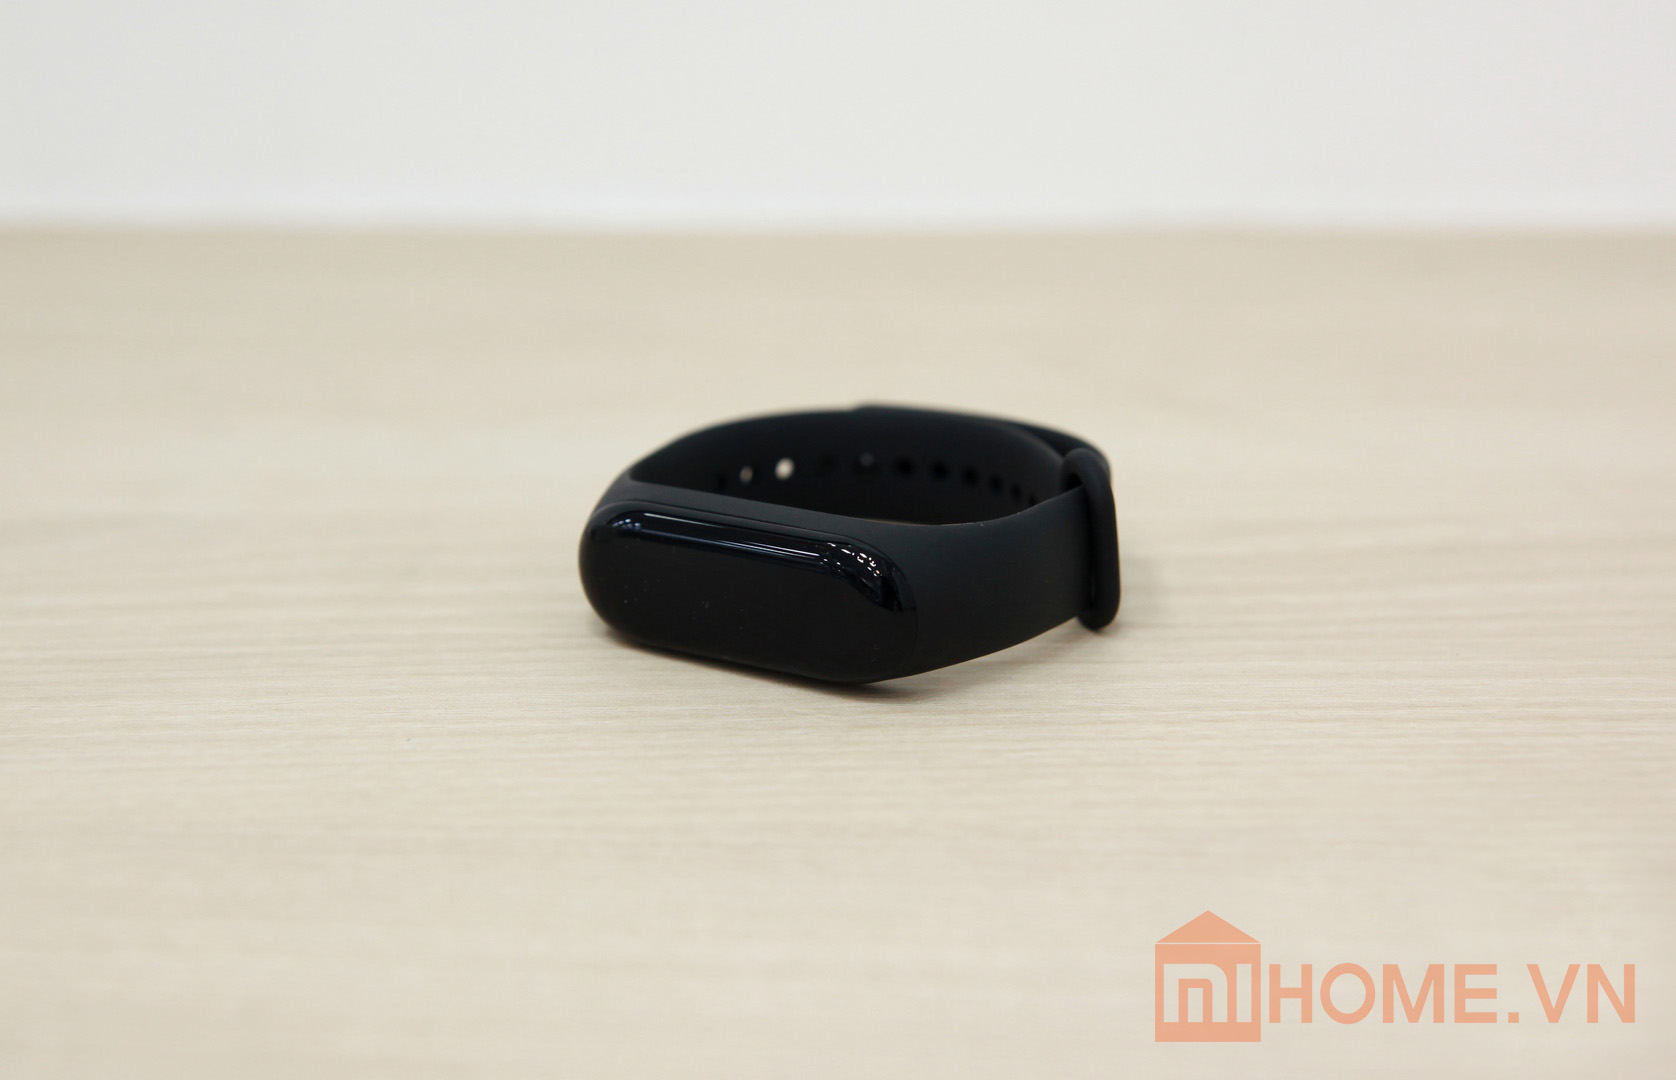 vong deo tay miband3 5